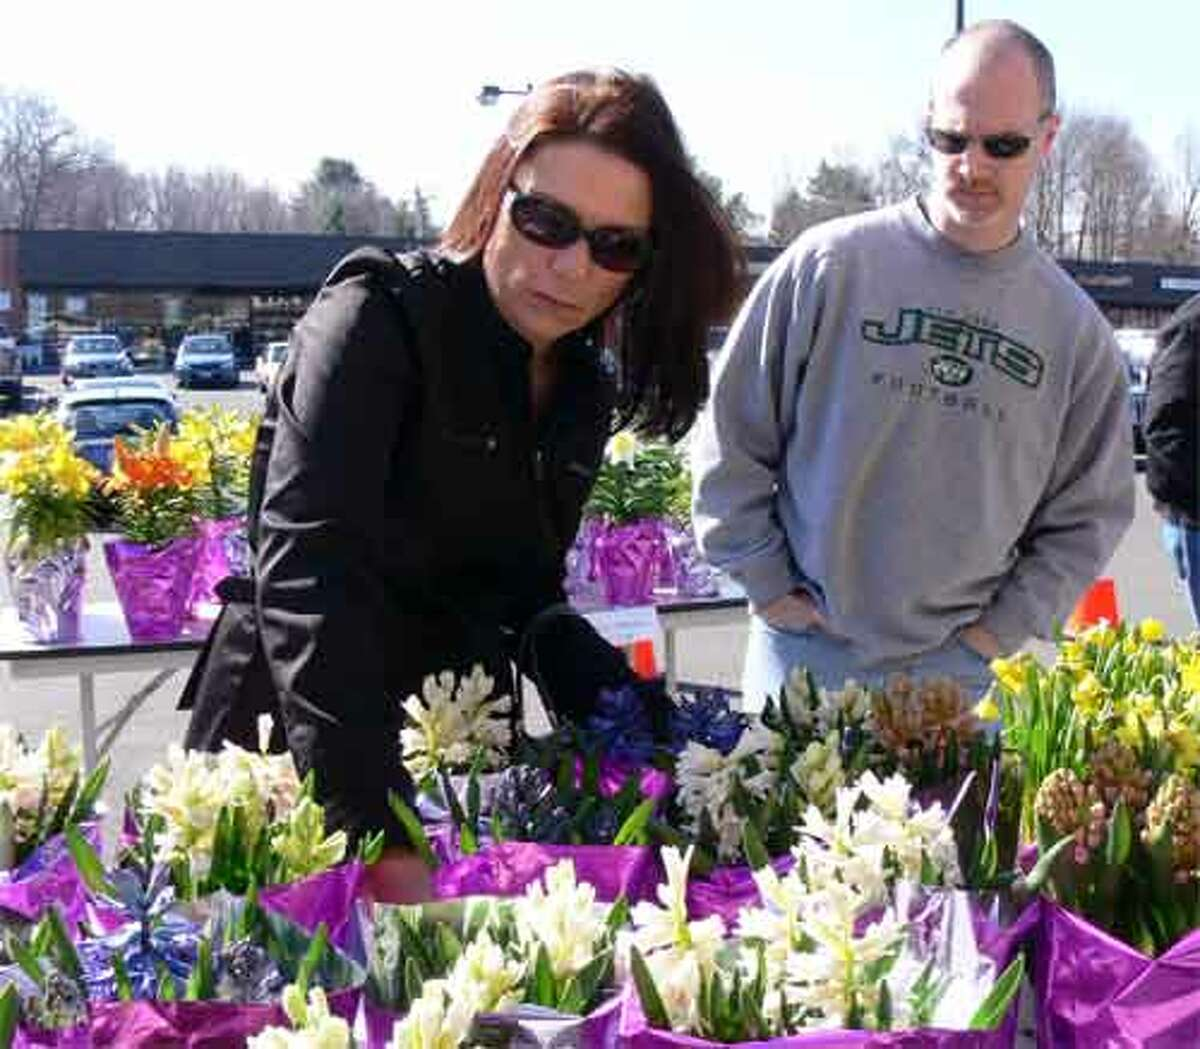 Lynn Dresak and Bruce Wagner of Shelton pick out flowers to buy for the holiday.